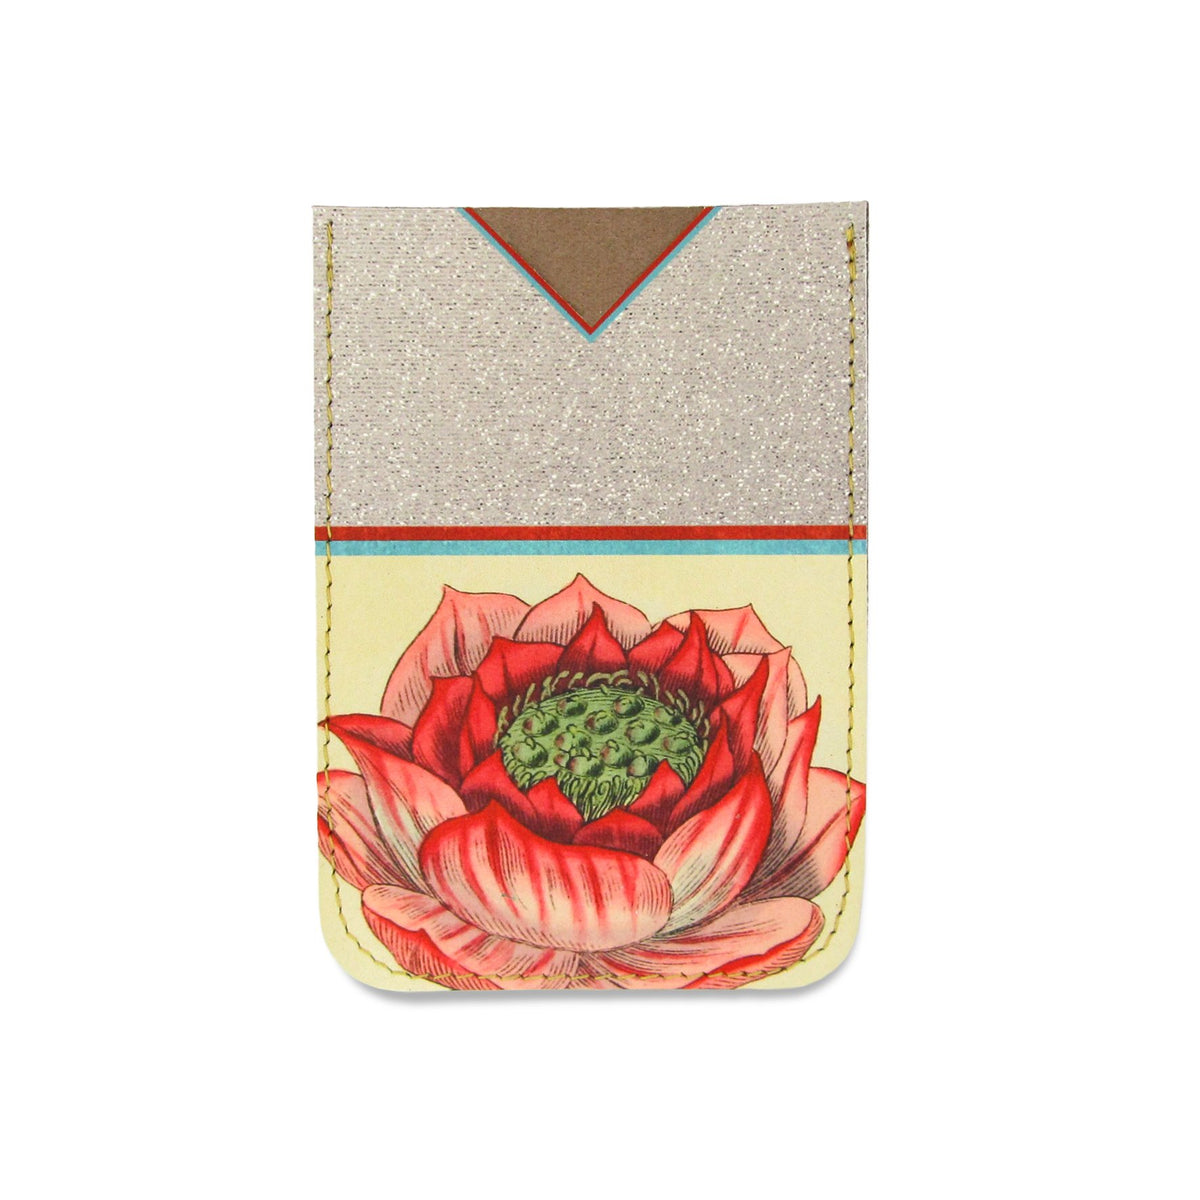 Leather Card Holder / Phone Sticker Wallet Pocket - Lotus Flower Wallet Tovi Sorga Standard Card Holder Without personalisation Pink